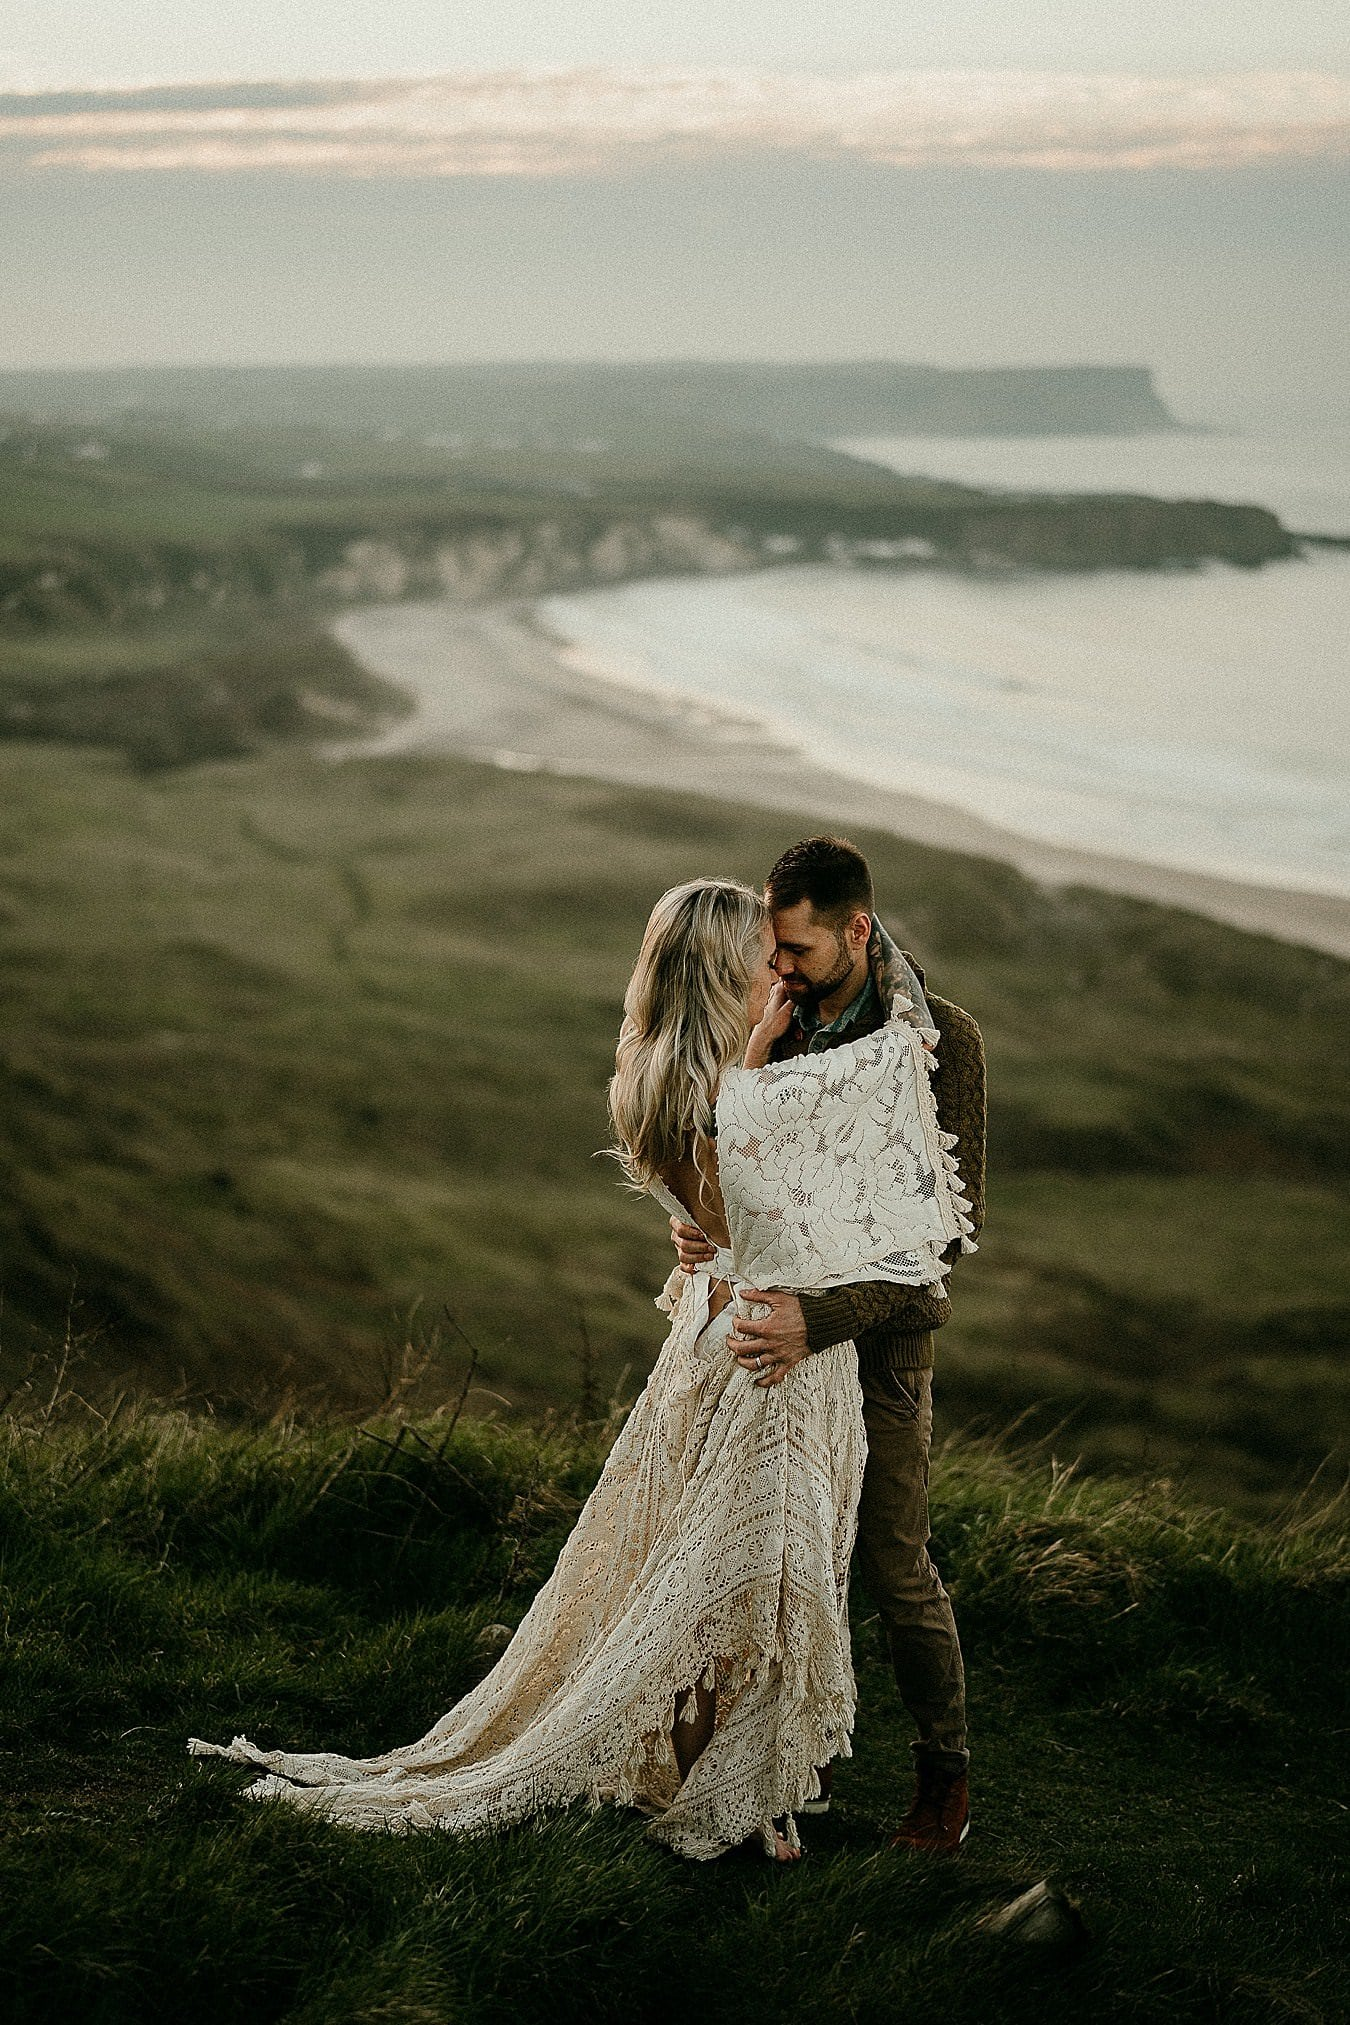 A sunset portrait in beautiful light on the Causeway Coast. Romantic adventure elopements in Europe. Dunseverick Castle.Adventure elopements in Northern Ireland. A romantic adventure session in Northern Ireland. Causeway Coast couples session. Ireland couples session. Ireland elopement photographer.